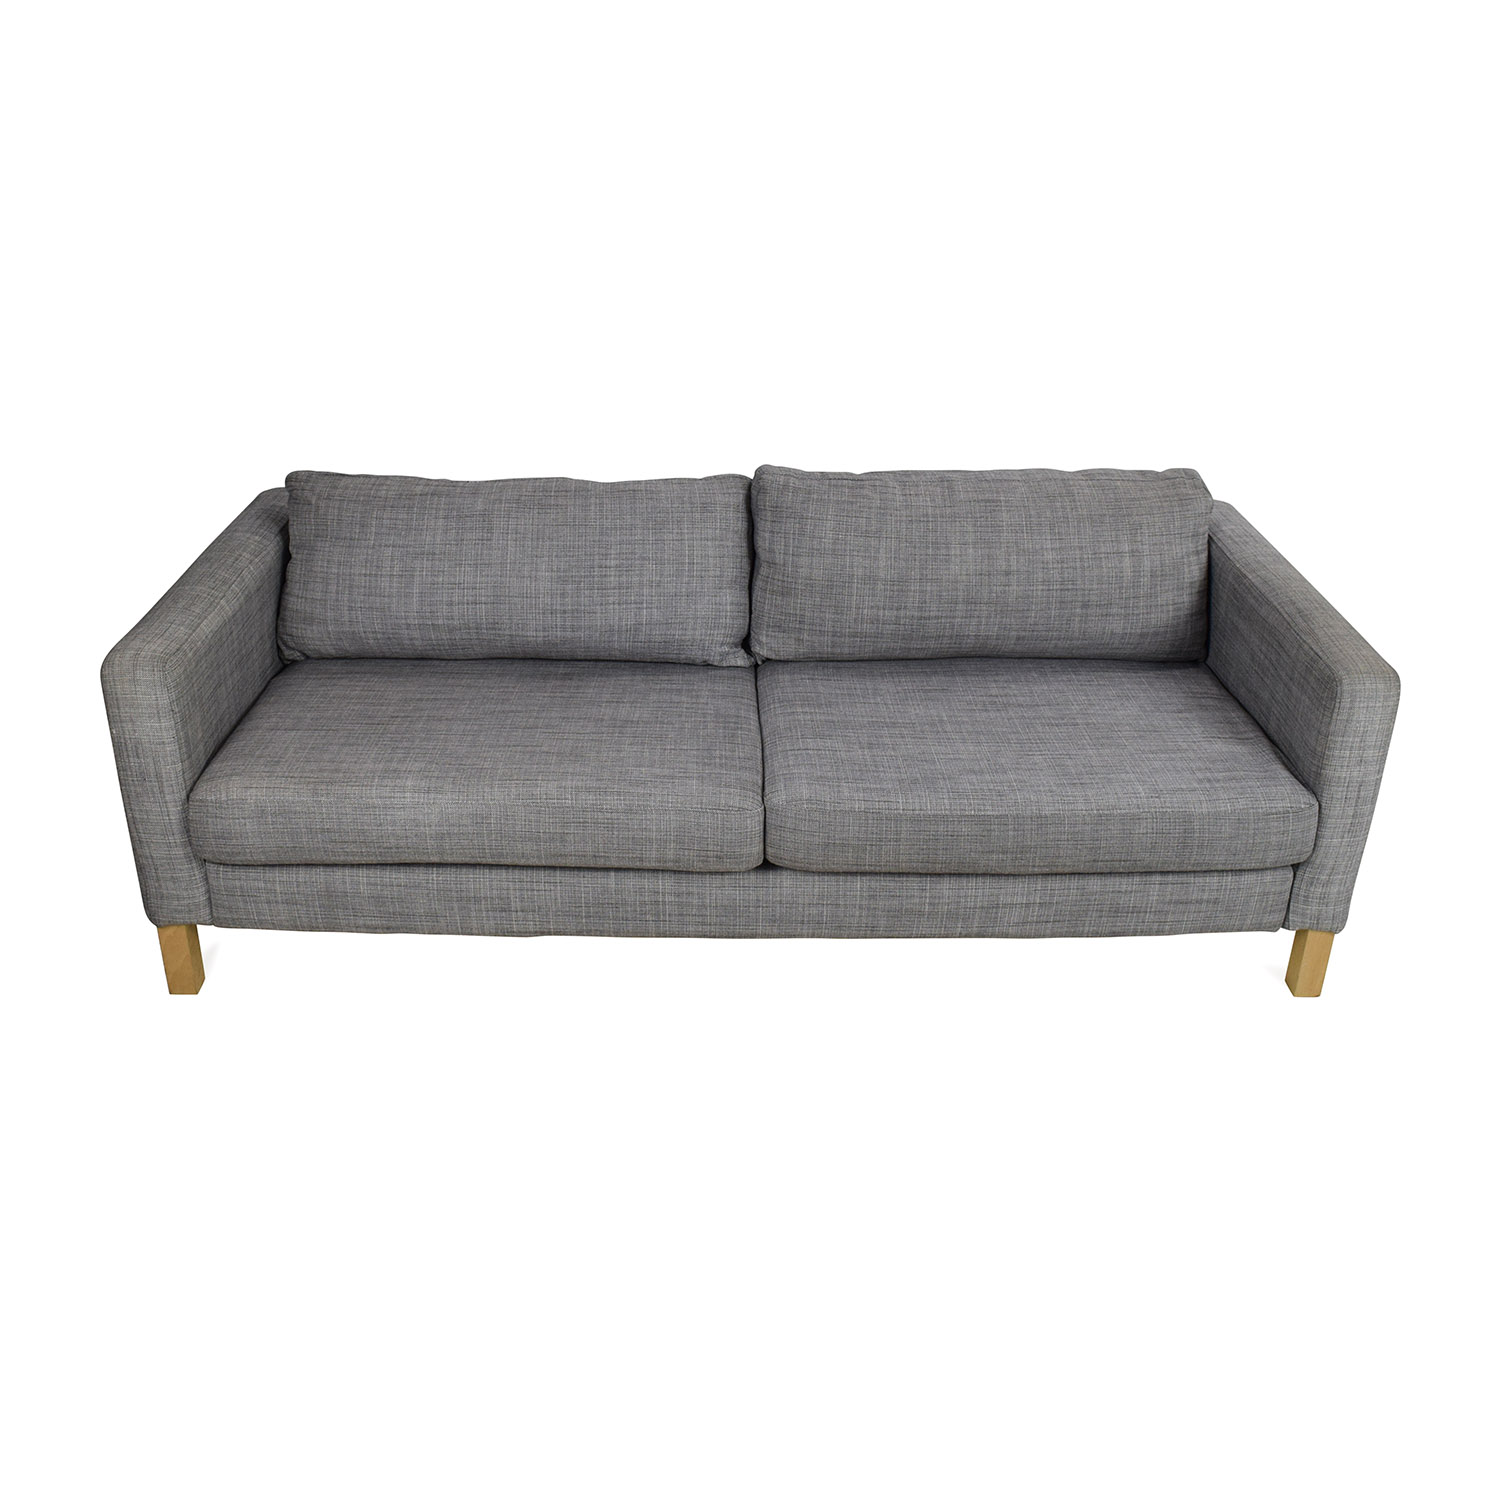 IKEA IKEA Karlstad Sofa on sale